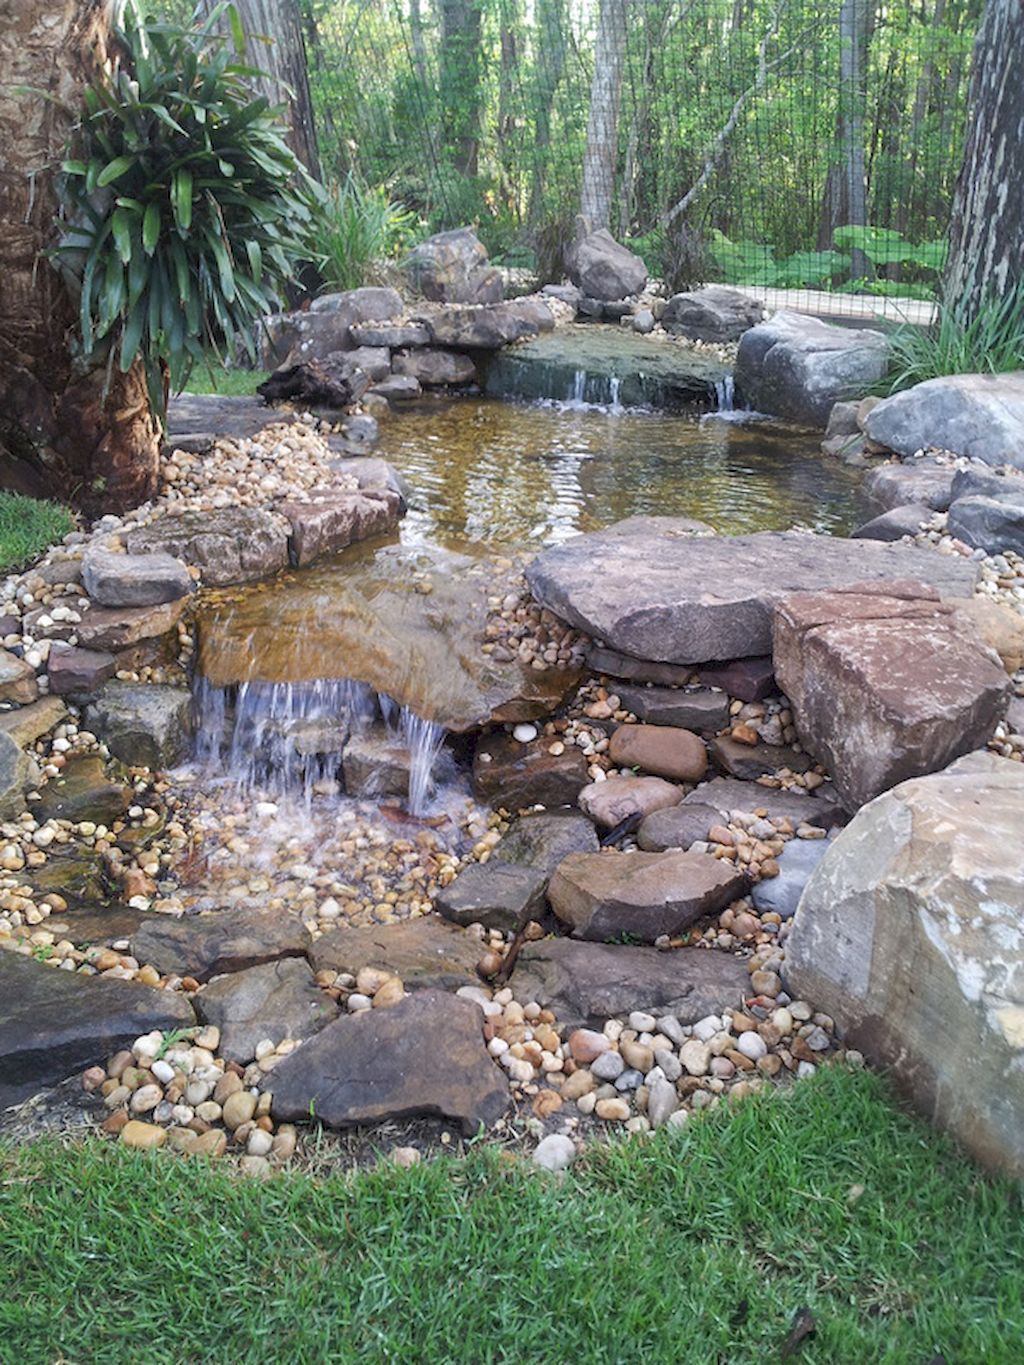 Nice 80 Gorgeous Backyard Ponds And Water Garden Landscaping Ideas Https Insidecorate Com 80 Waterfalls Backyard Water Features In The Garden Ponds Backyard Modern backyard waterfall ideas